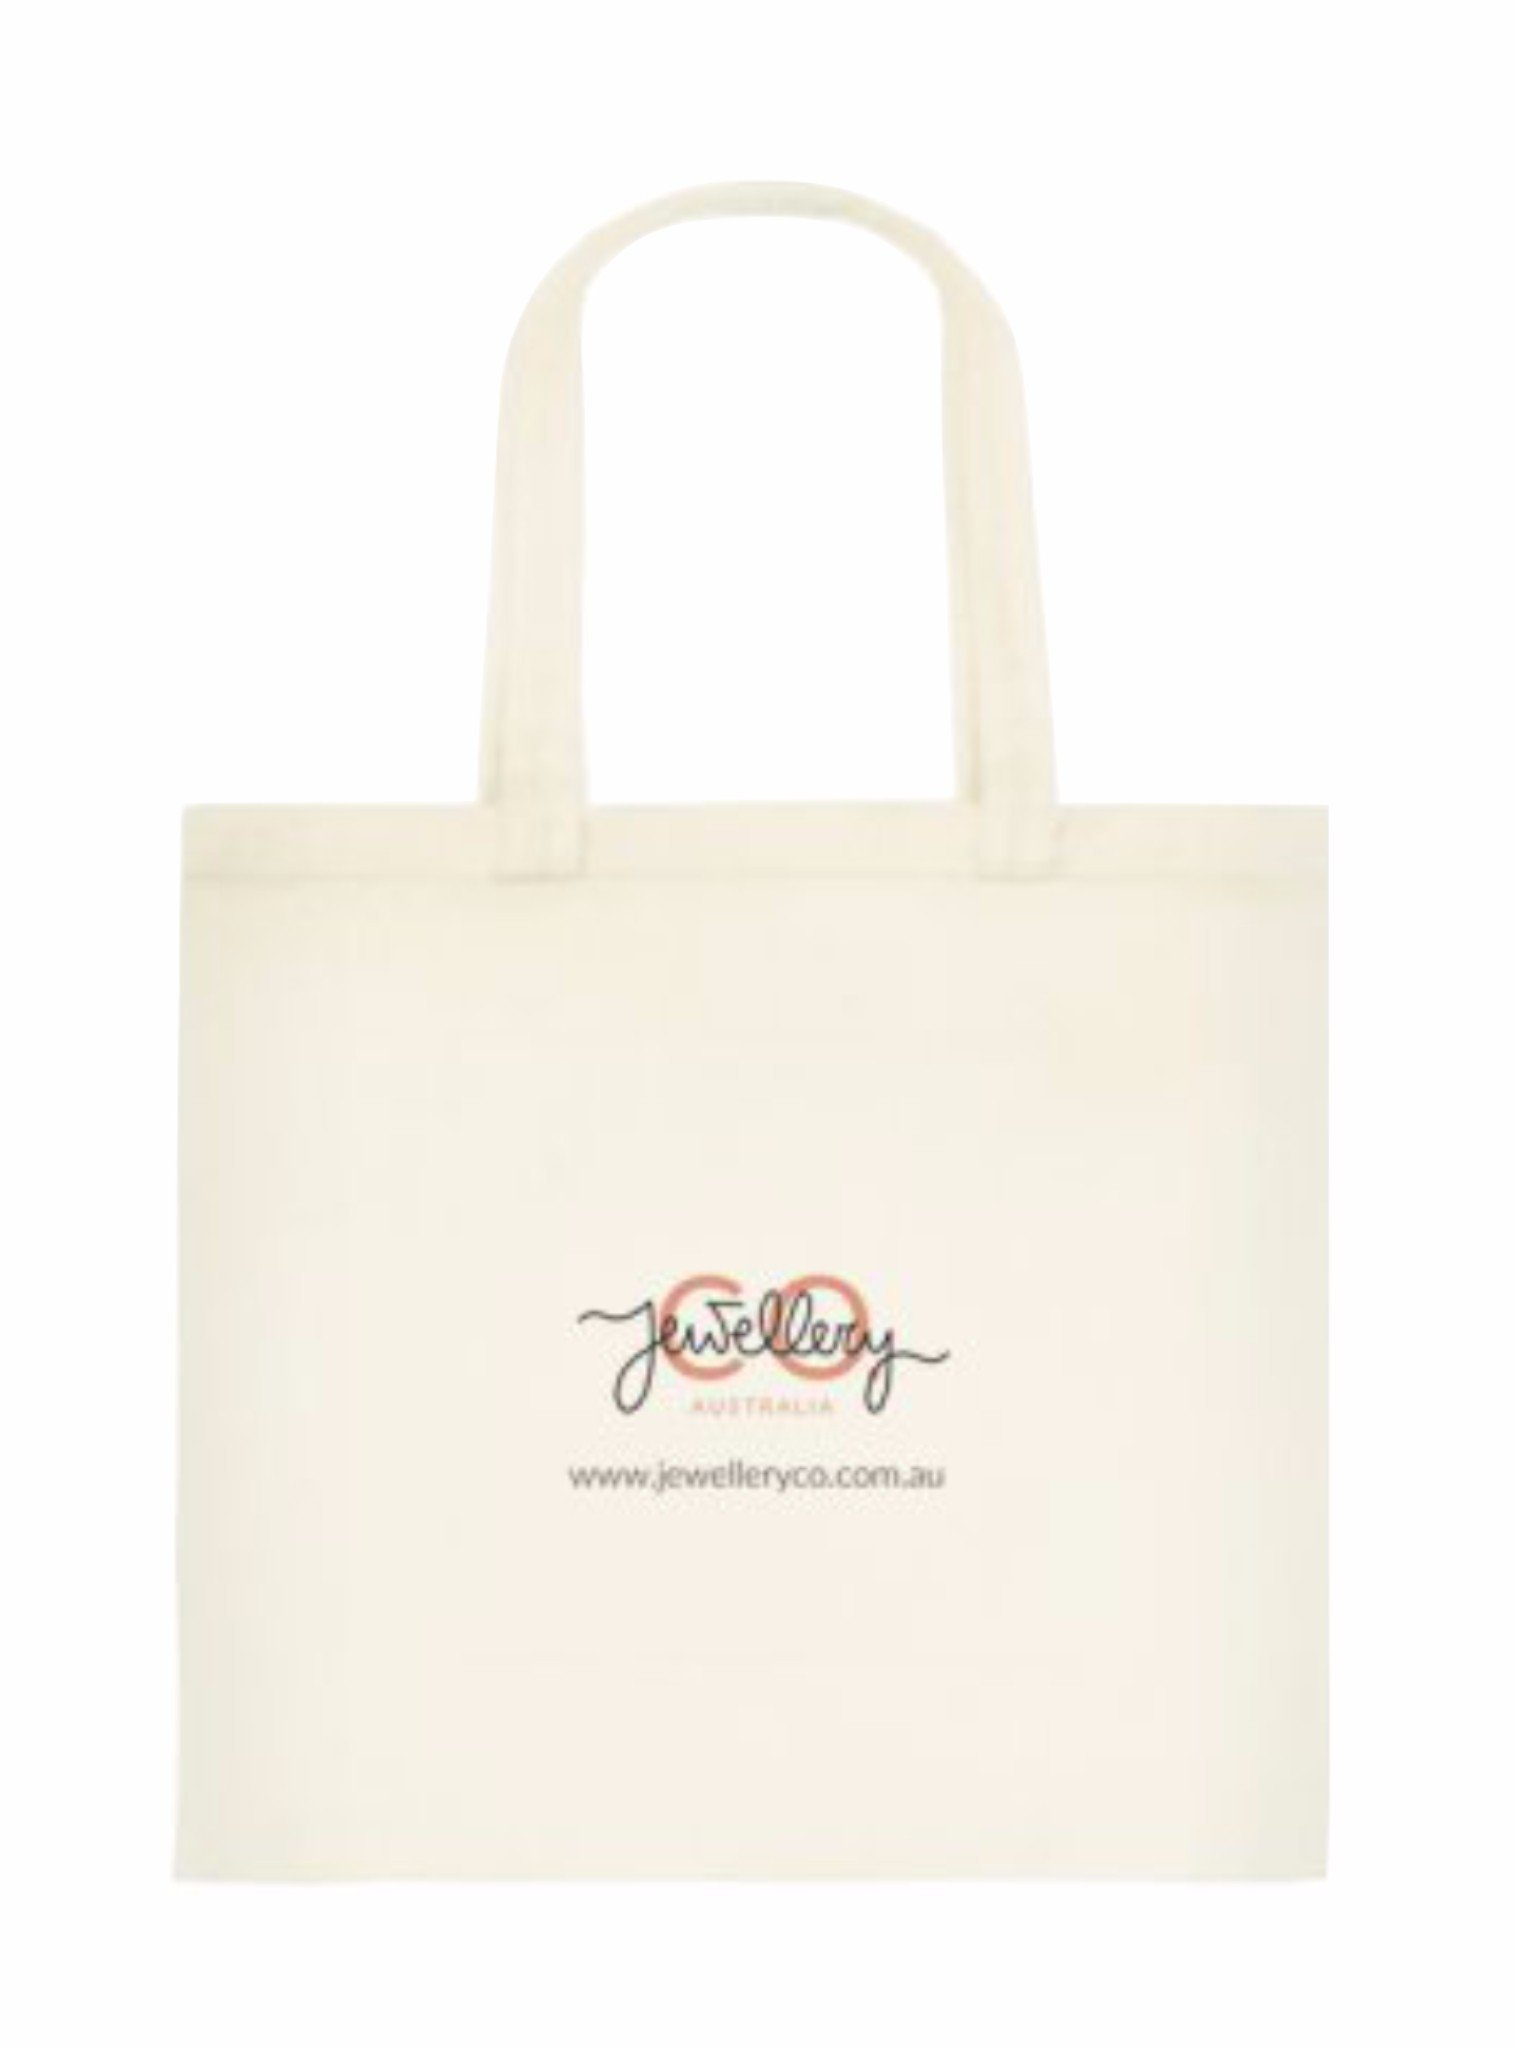 Jewellery Co Signature Canvas Tote Bag